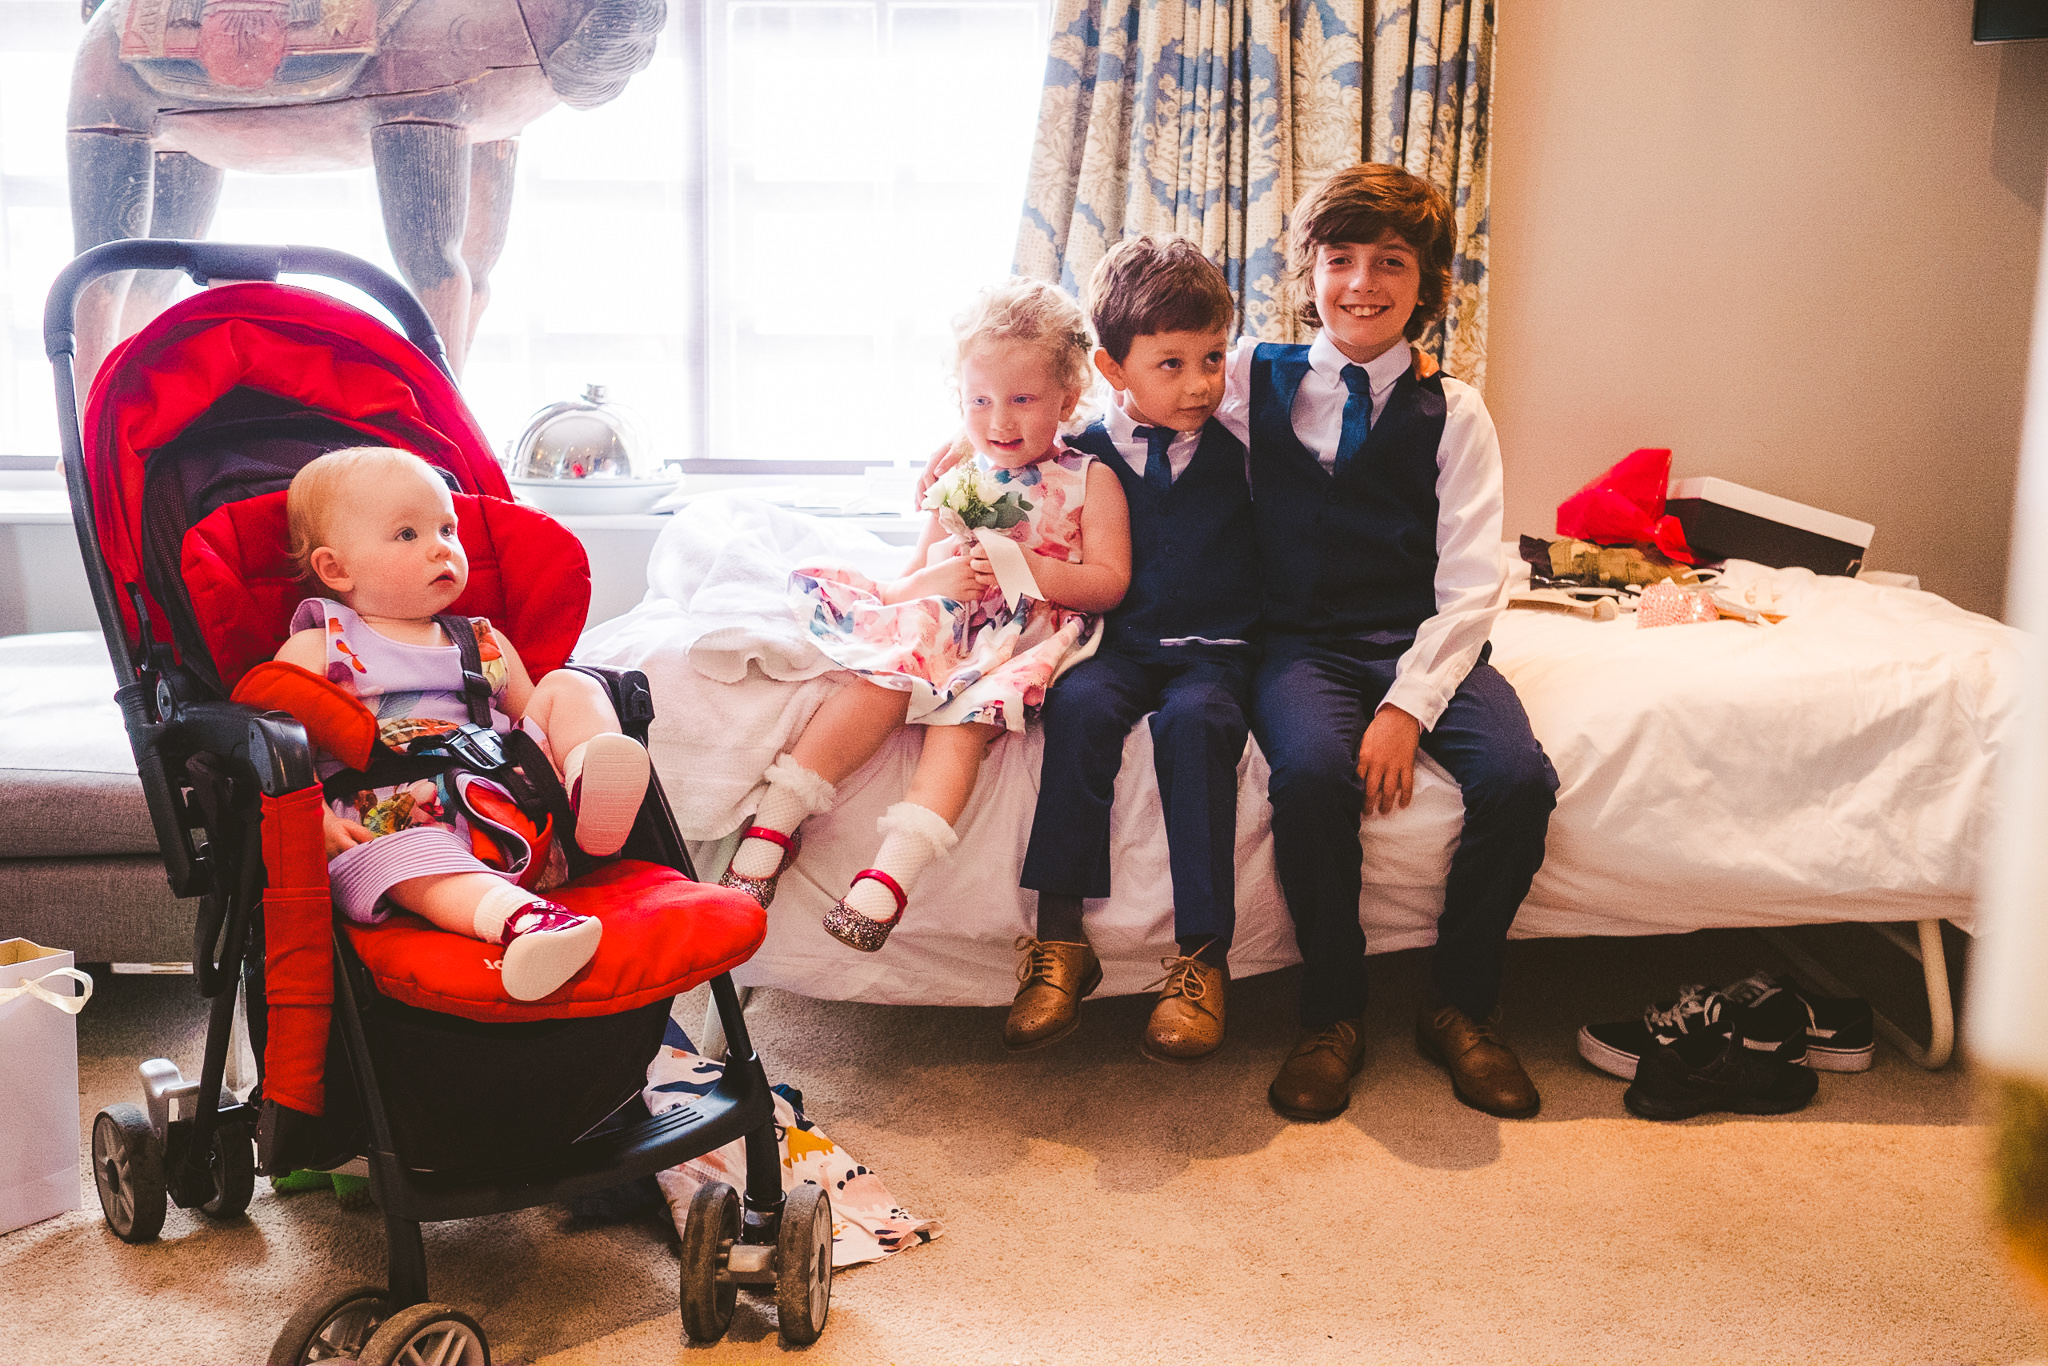 Children sitting on a bed ready for the wedding